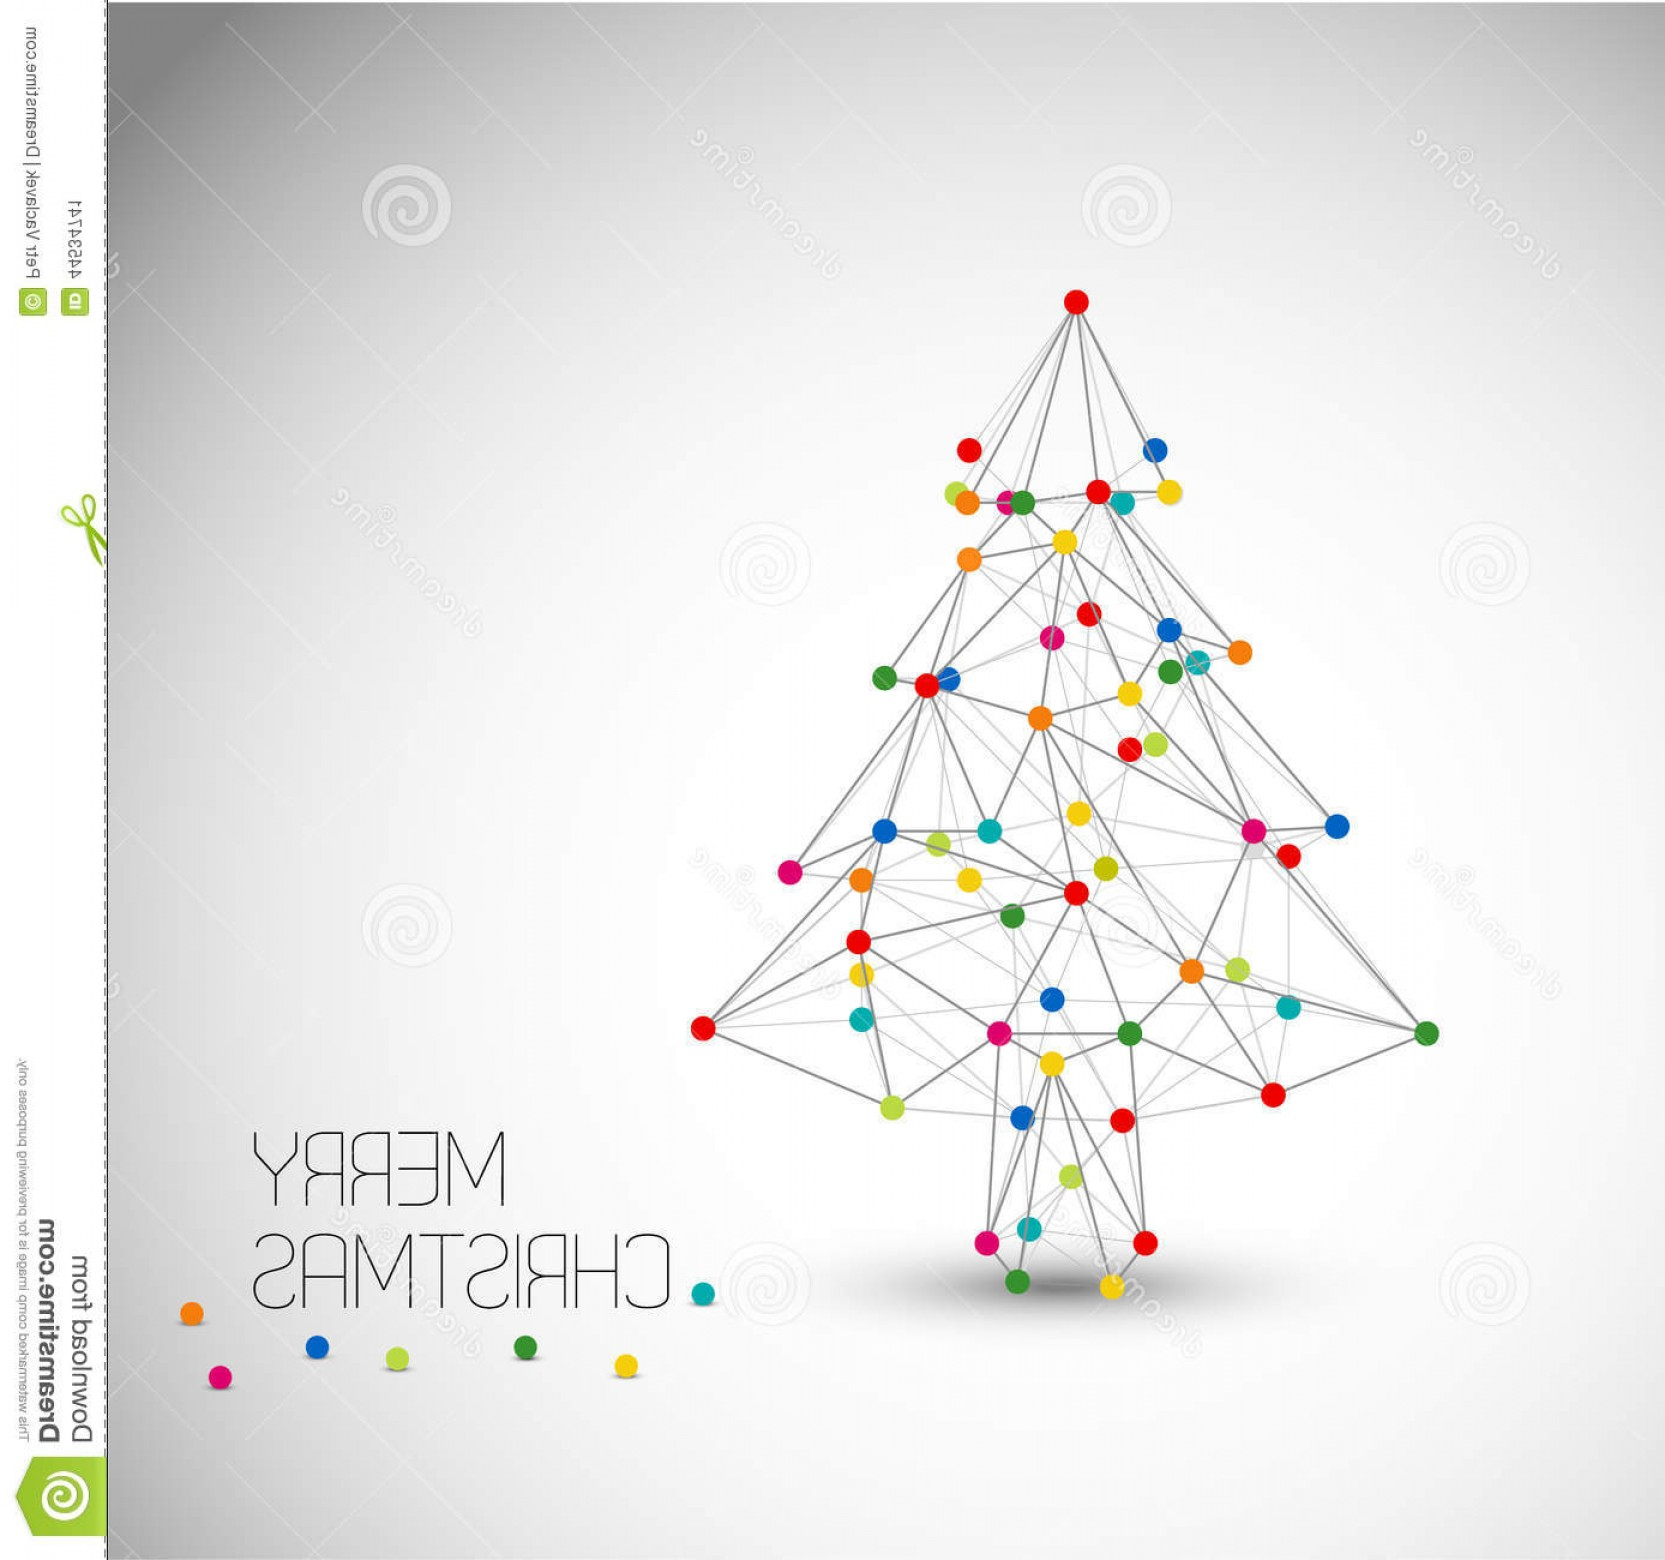 Less Christmas Tree Abstract Vector Background: Stock Illustration Vector Card Abstract Christmas Tree Made Lines Dots Colorful Low Poly Art Image